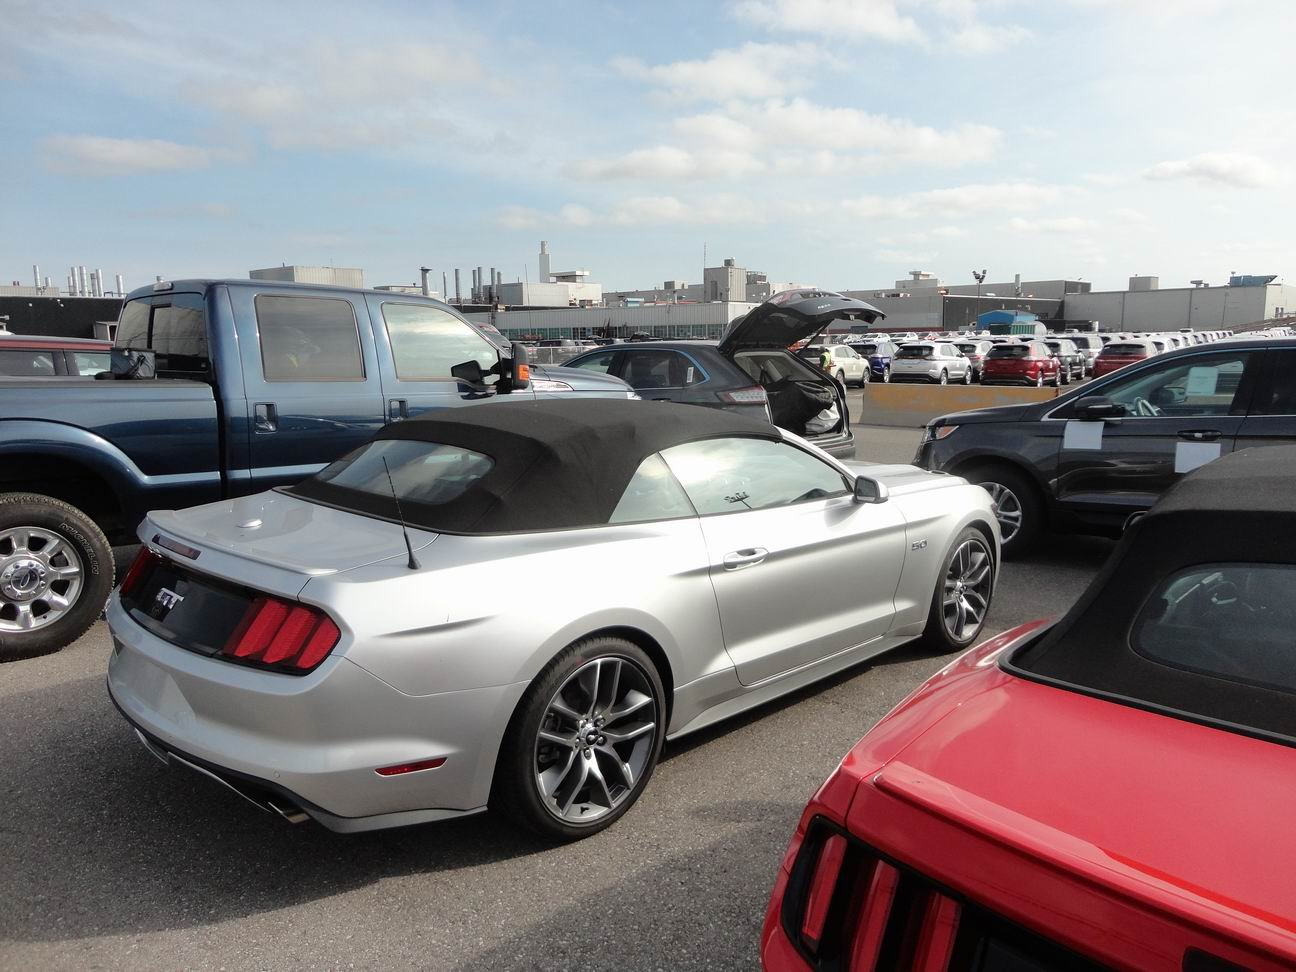 2015 Mustang convertible tonneau caps - Page 6 - Ford Mustang Forum